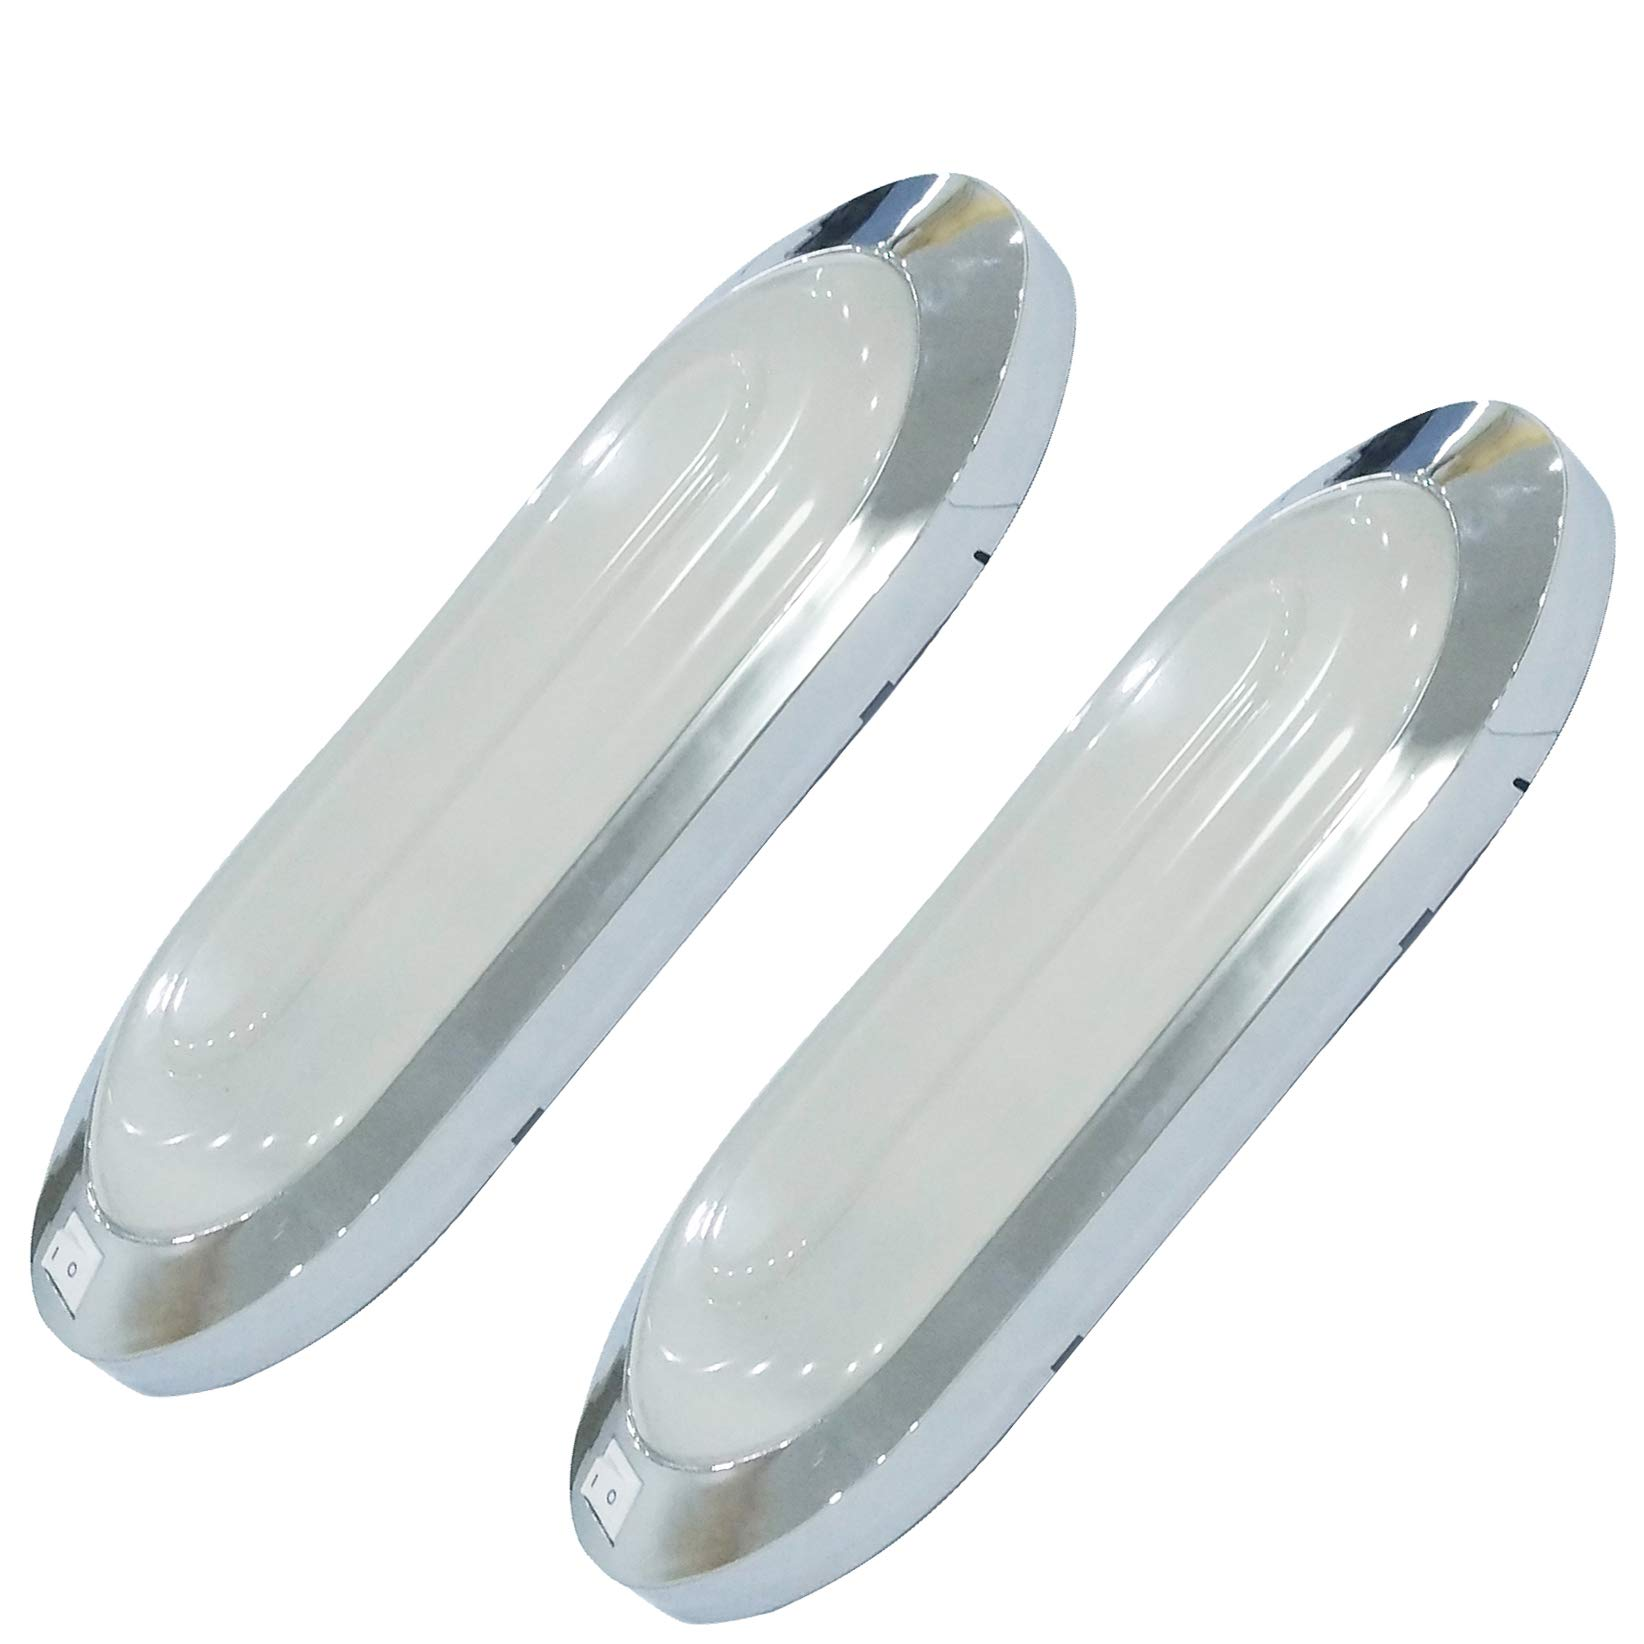 Facon New LED 12V Bright Pancake Interior Light Ceiling Dome Light 6W 470 LM with On/Off Switch (Pack of 2, Bright Chrome)